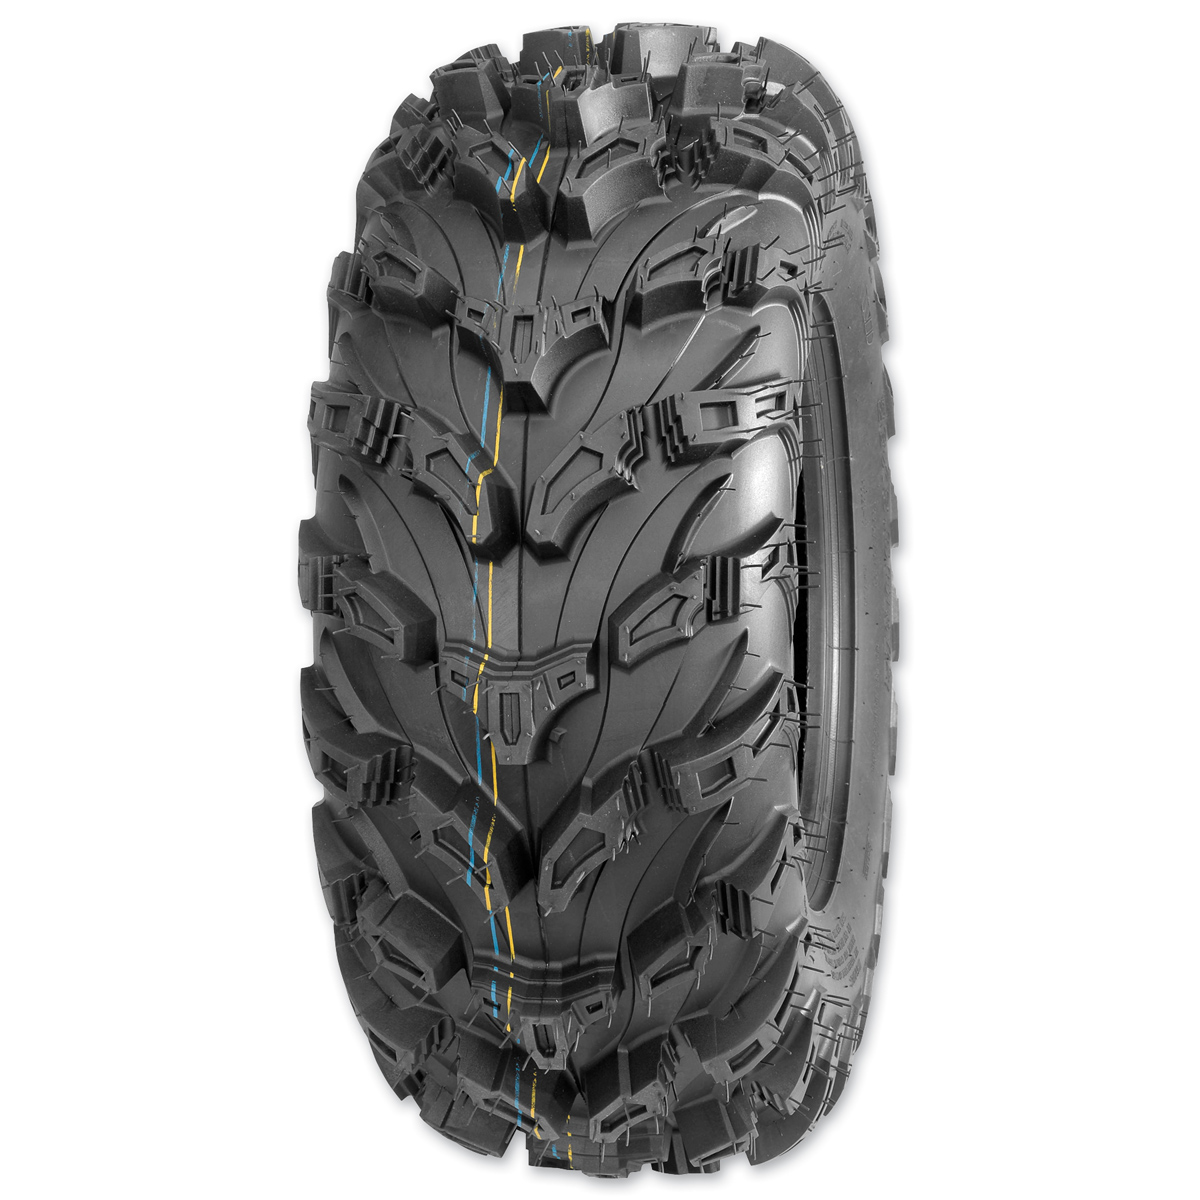 Quadboss QBT672 27X9R12 8-Ply Front Tire